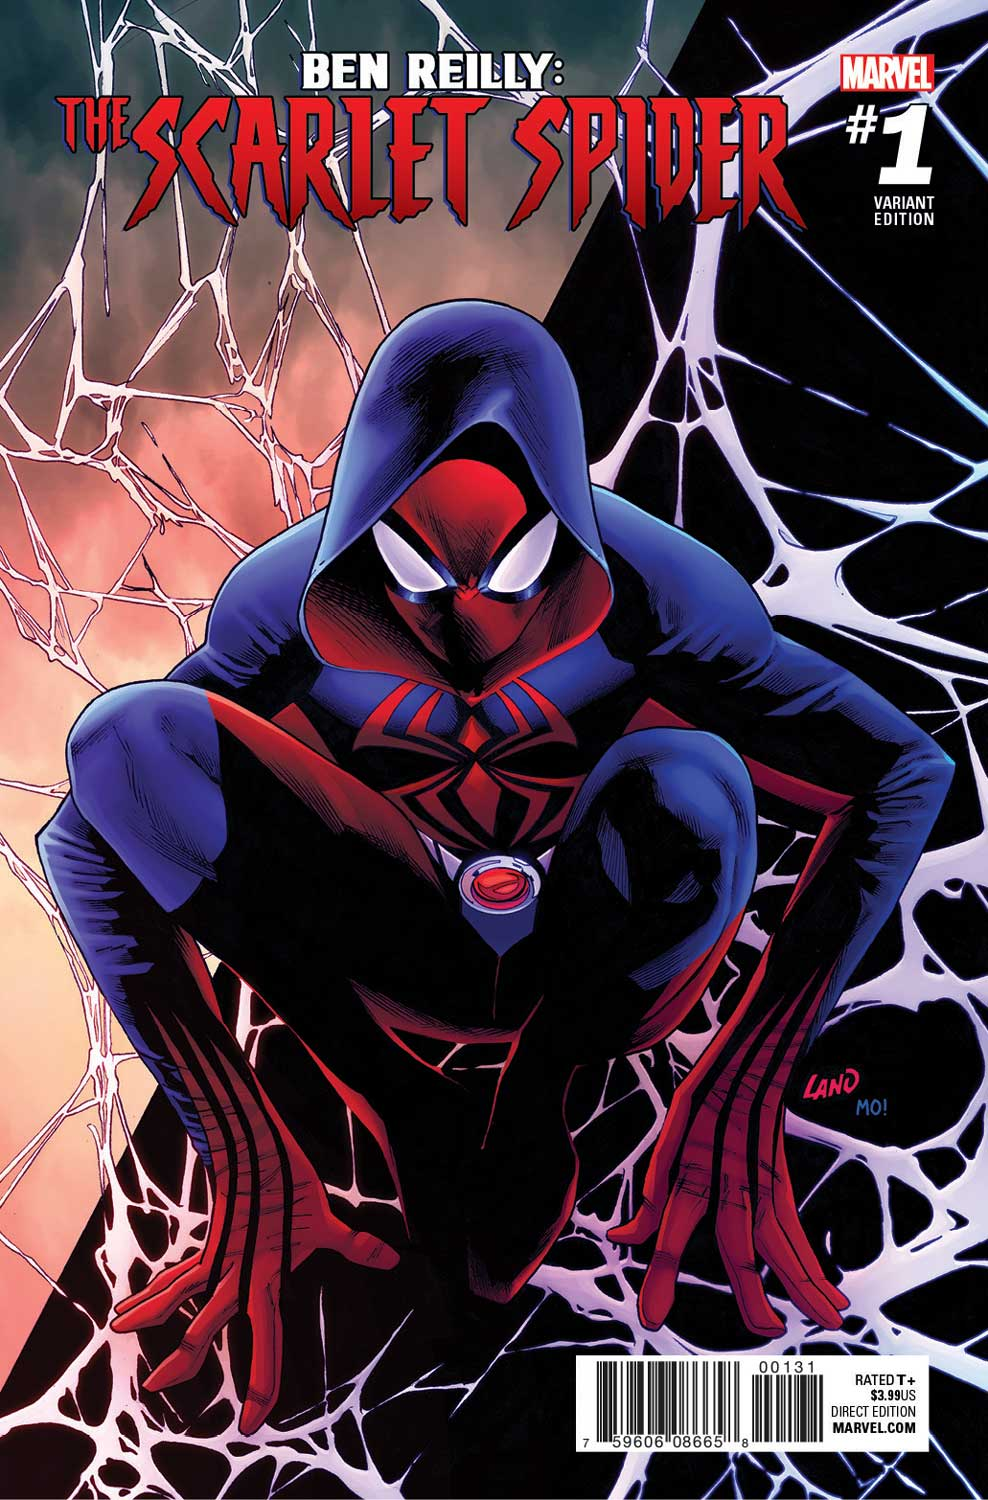 BEN REILLY: THE SCARLET SPIDER #1 – Your First Look at The New Series!